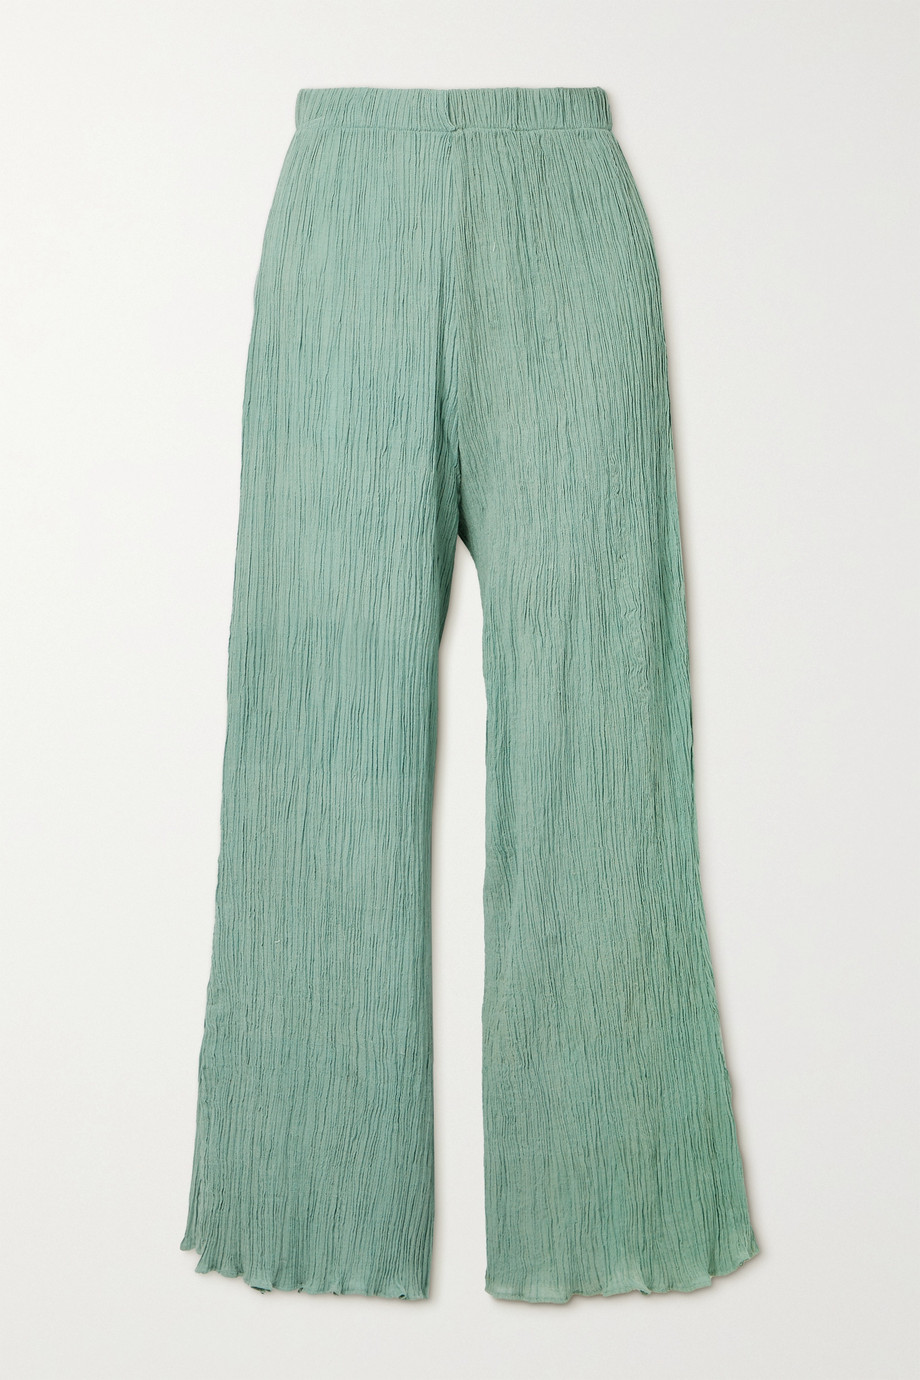 SAVANNAH MORROW THE LABEL + NET SUSTAIN June crinkled organic cotton-gauze pants